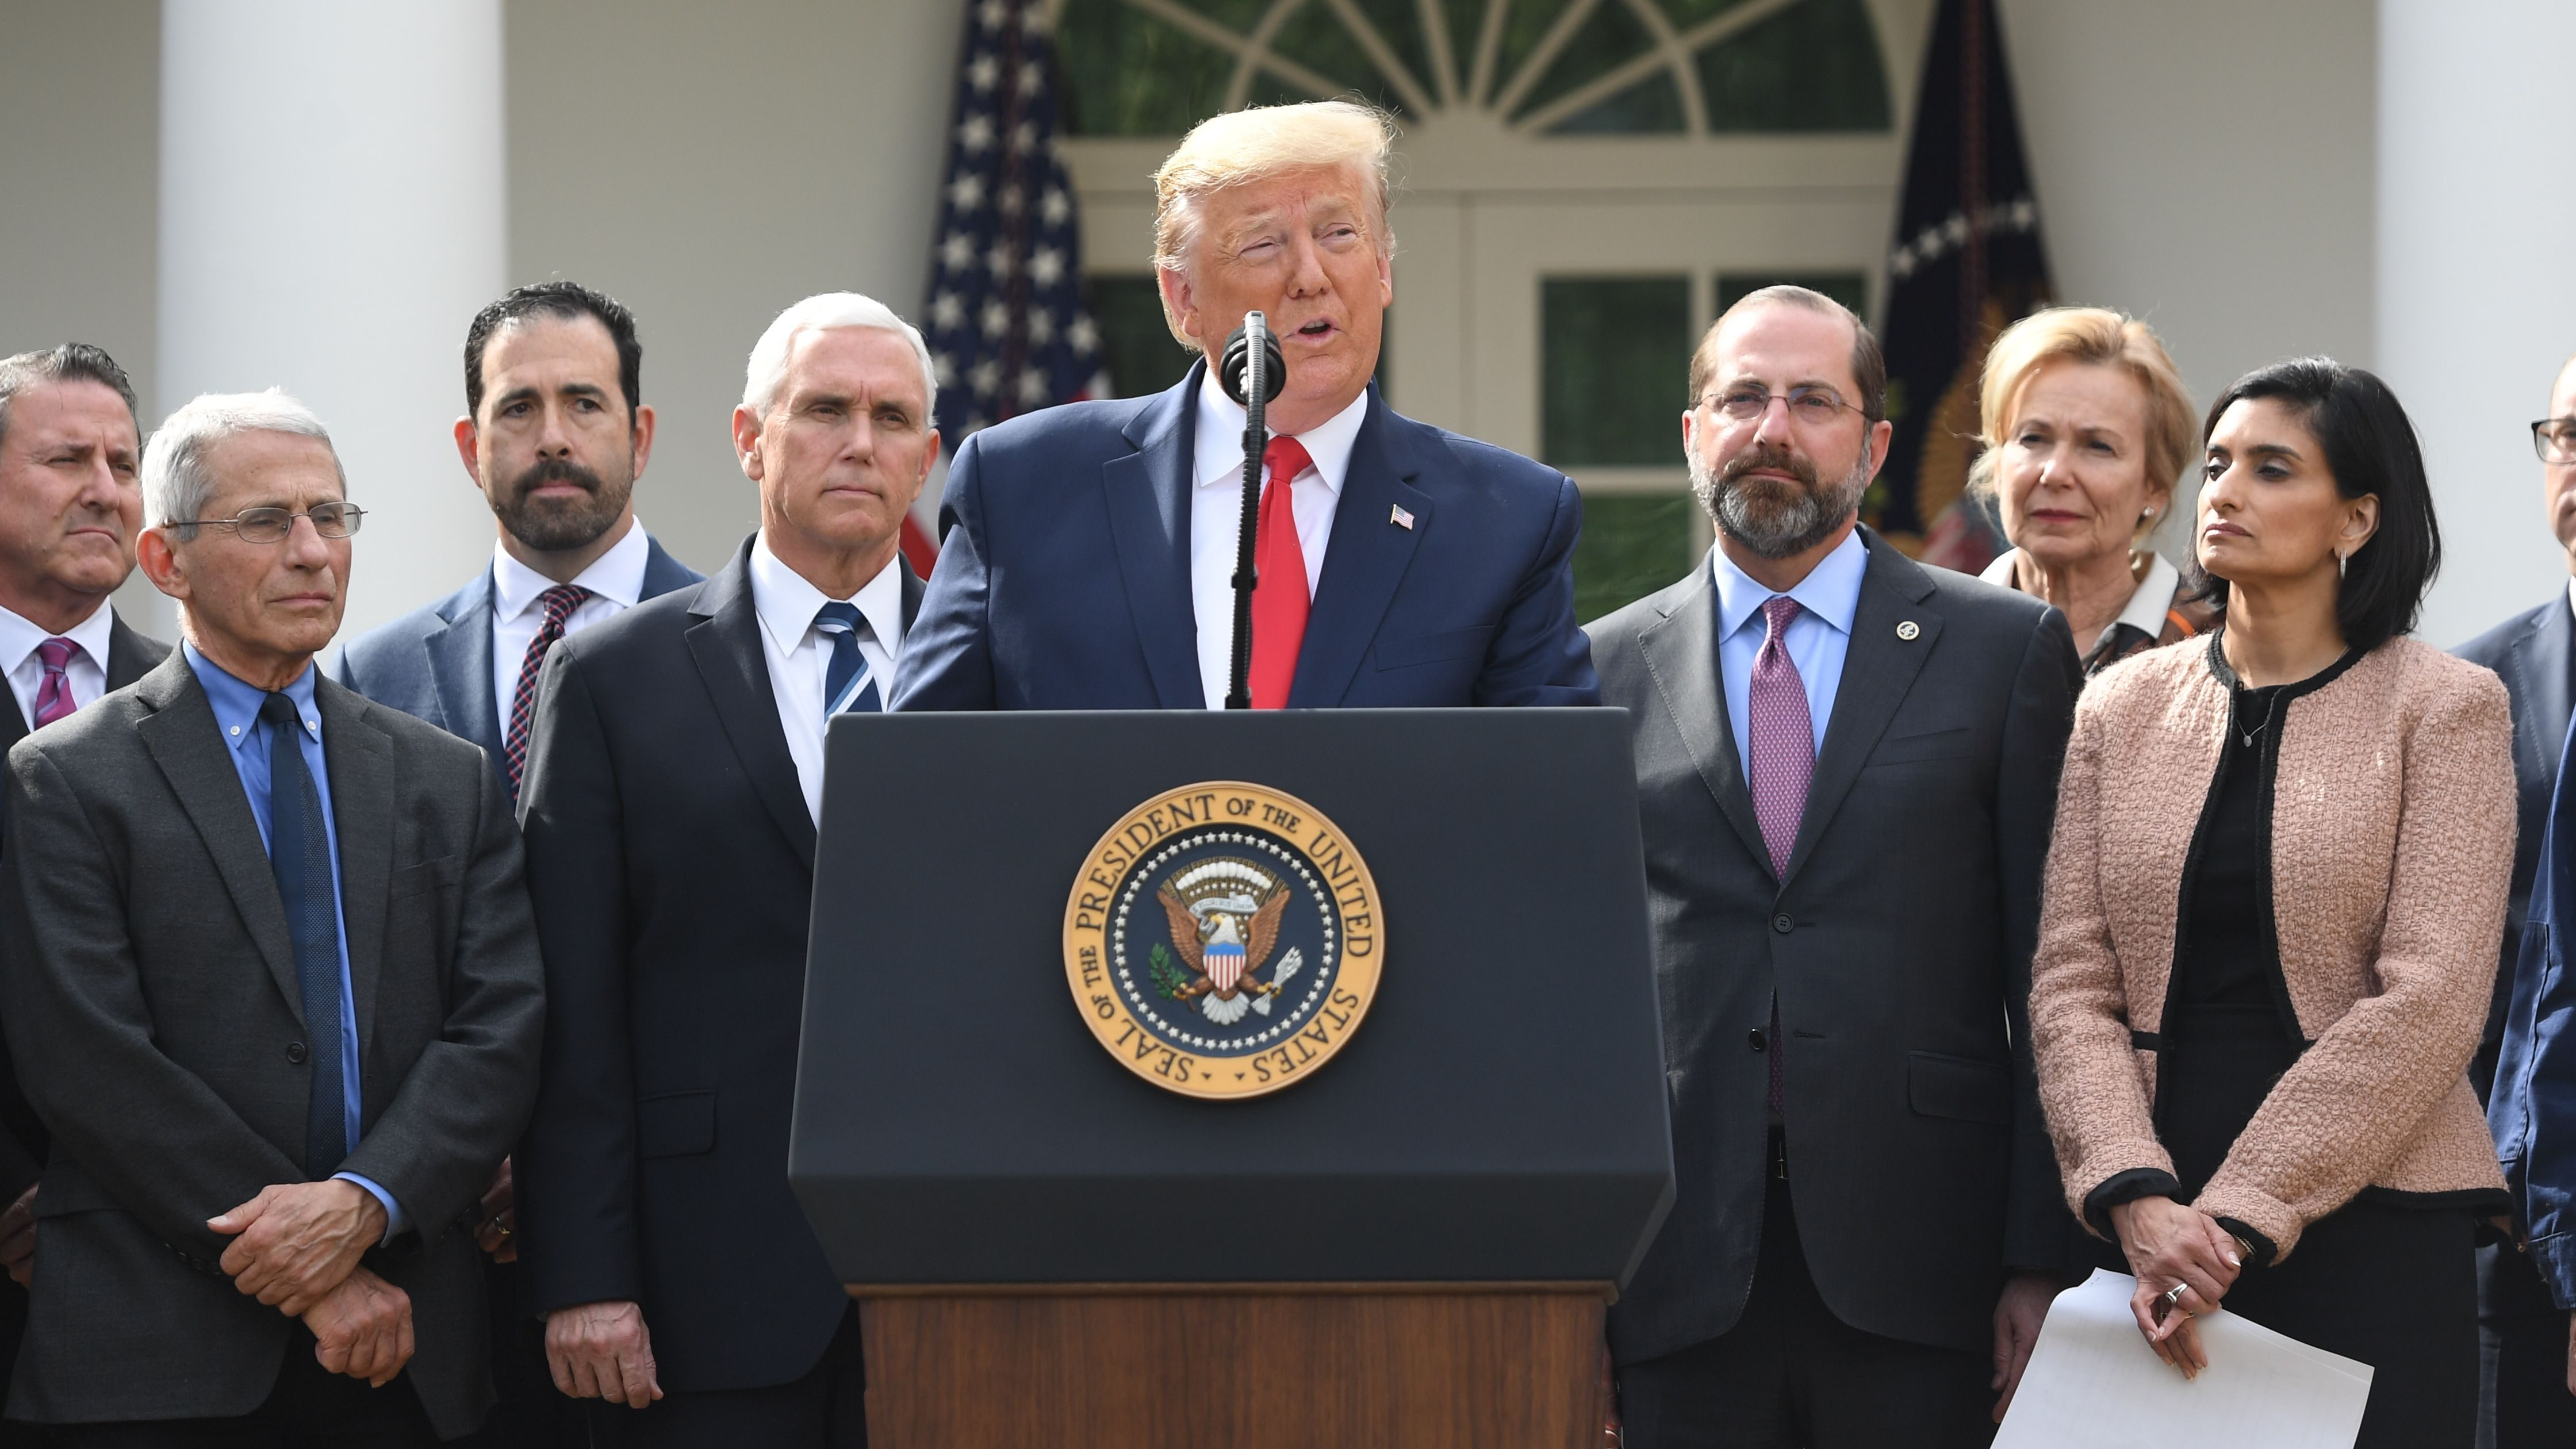 Trump declares national emergency over COVID-19 - Marketplace